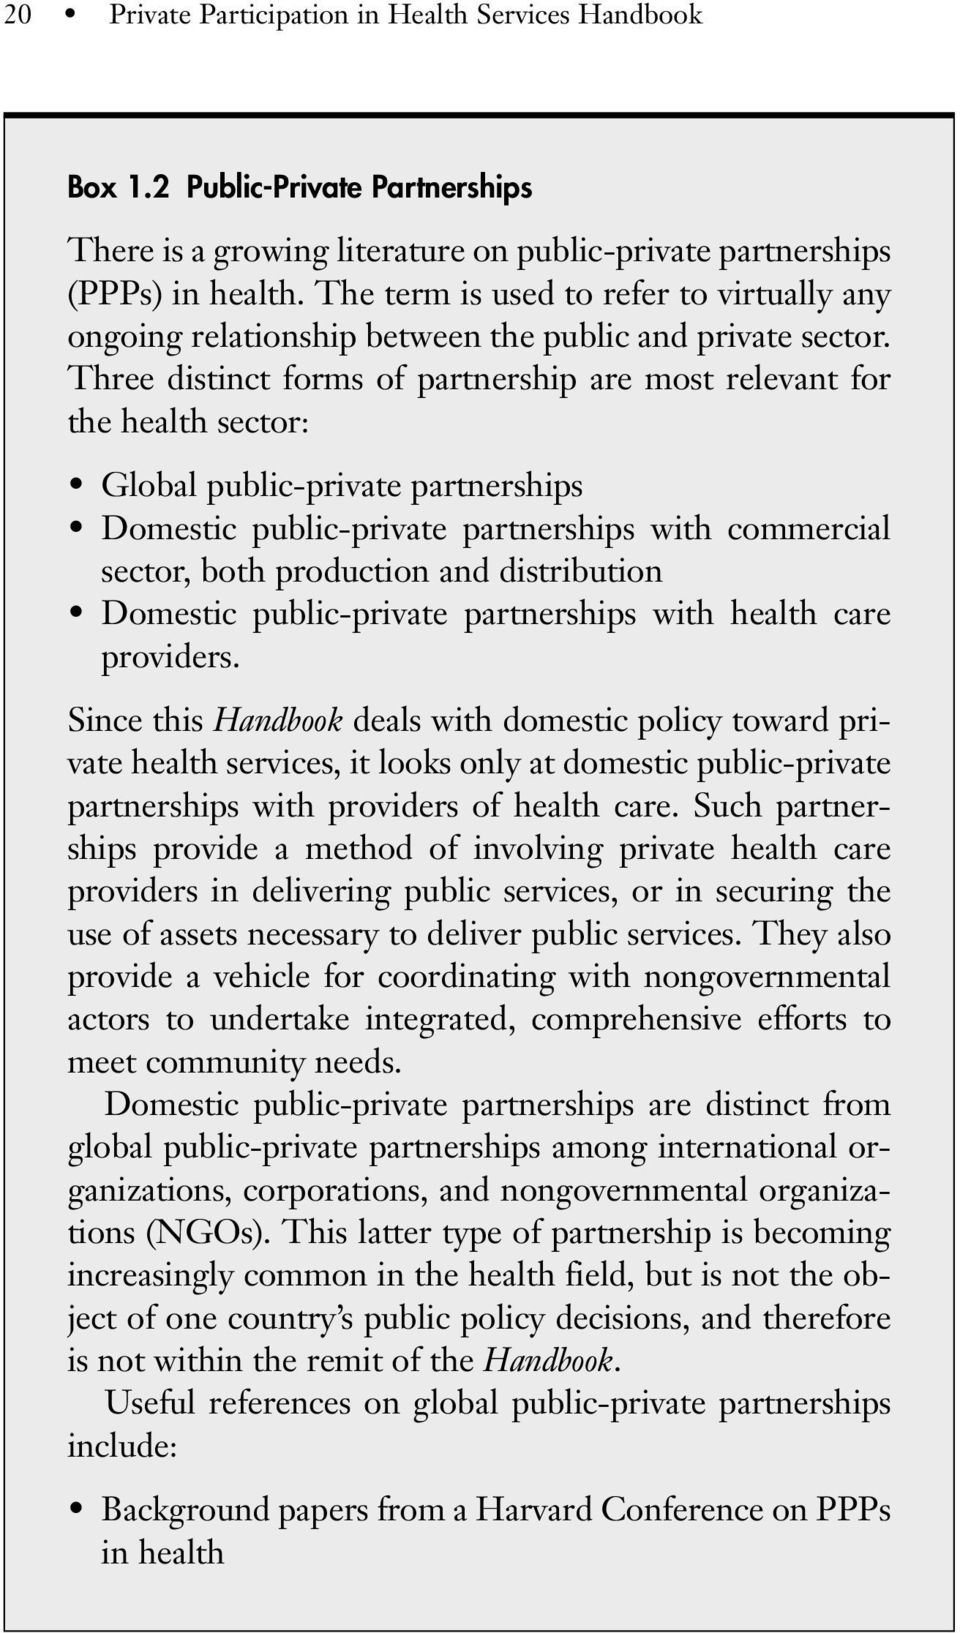 Three distinct forms of partnership are most relevant for the health sector: Global public-private partnerships Domestic public-private partnerships with commercial sector, both production and